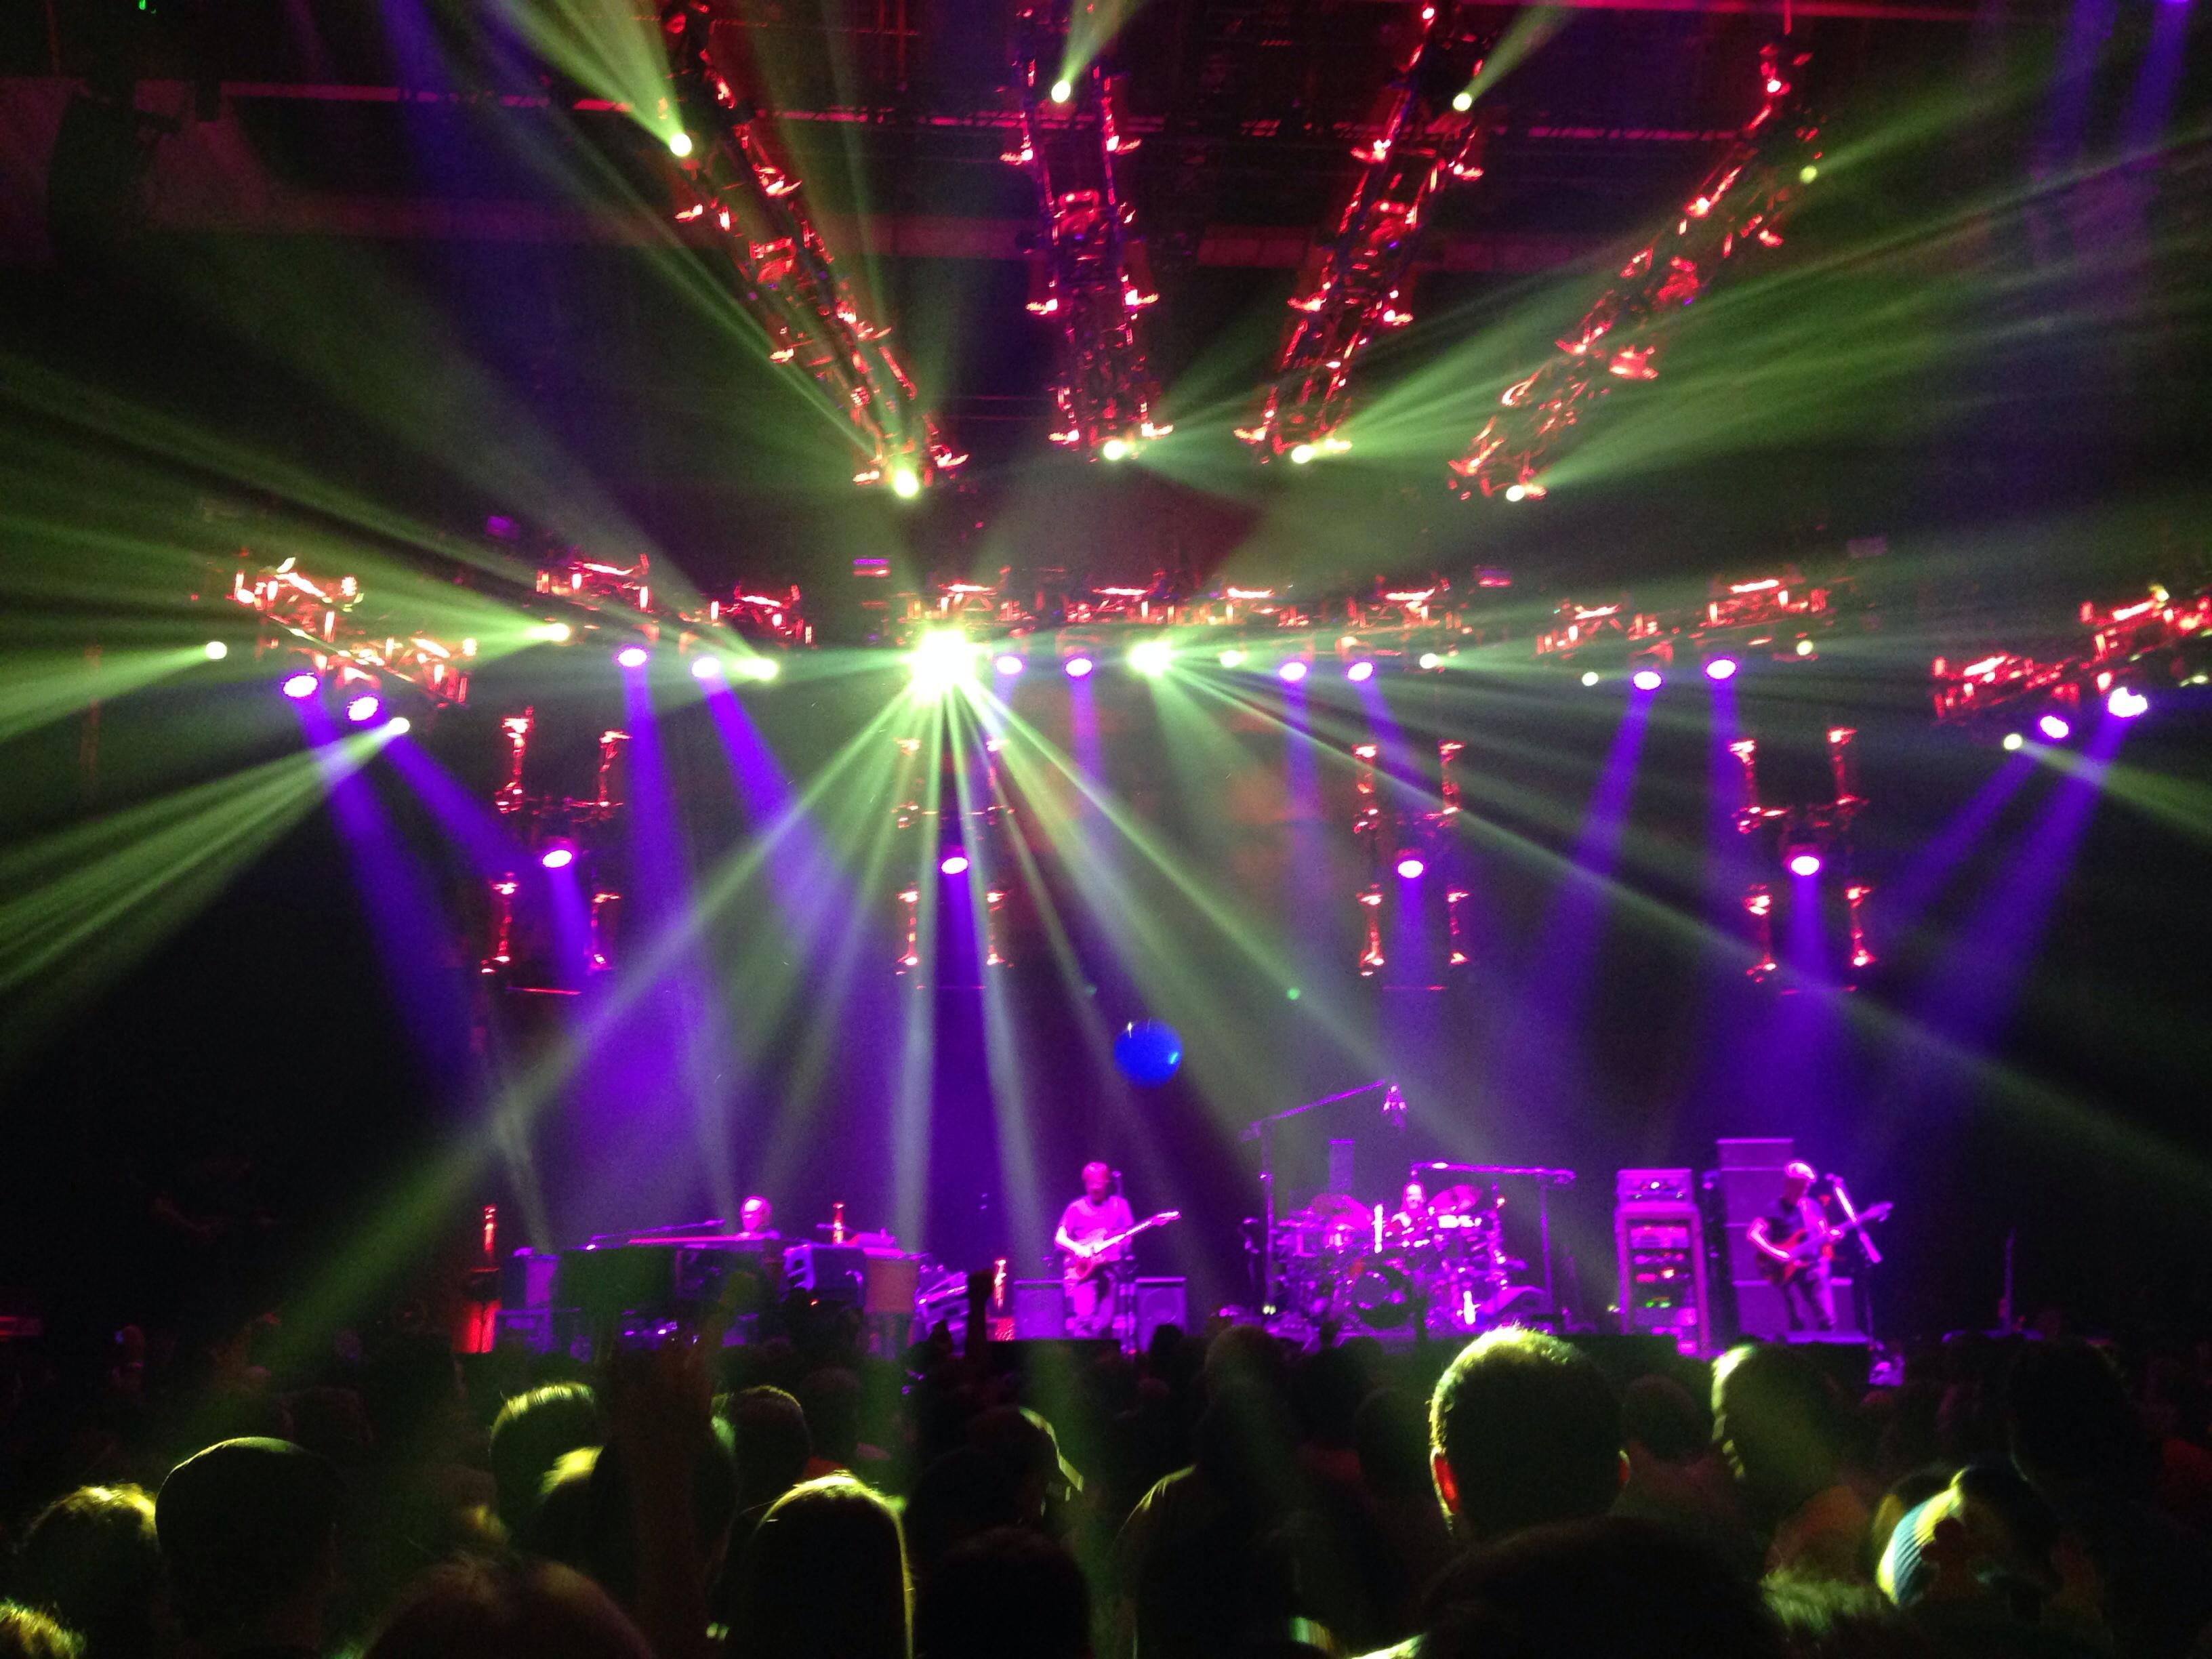 A Beginneru0027s Guide To Concert Photography   IPiccy Photo Editor Blog ...